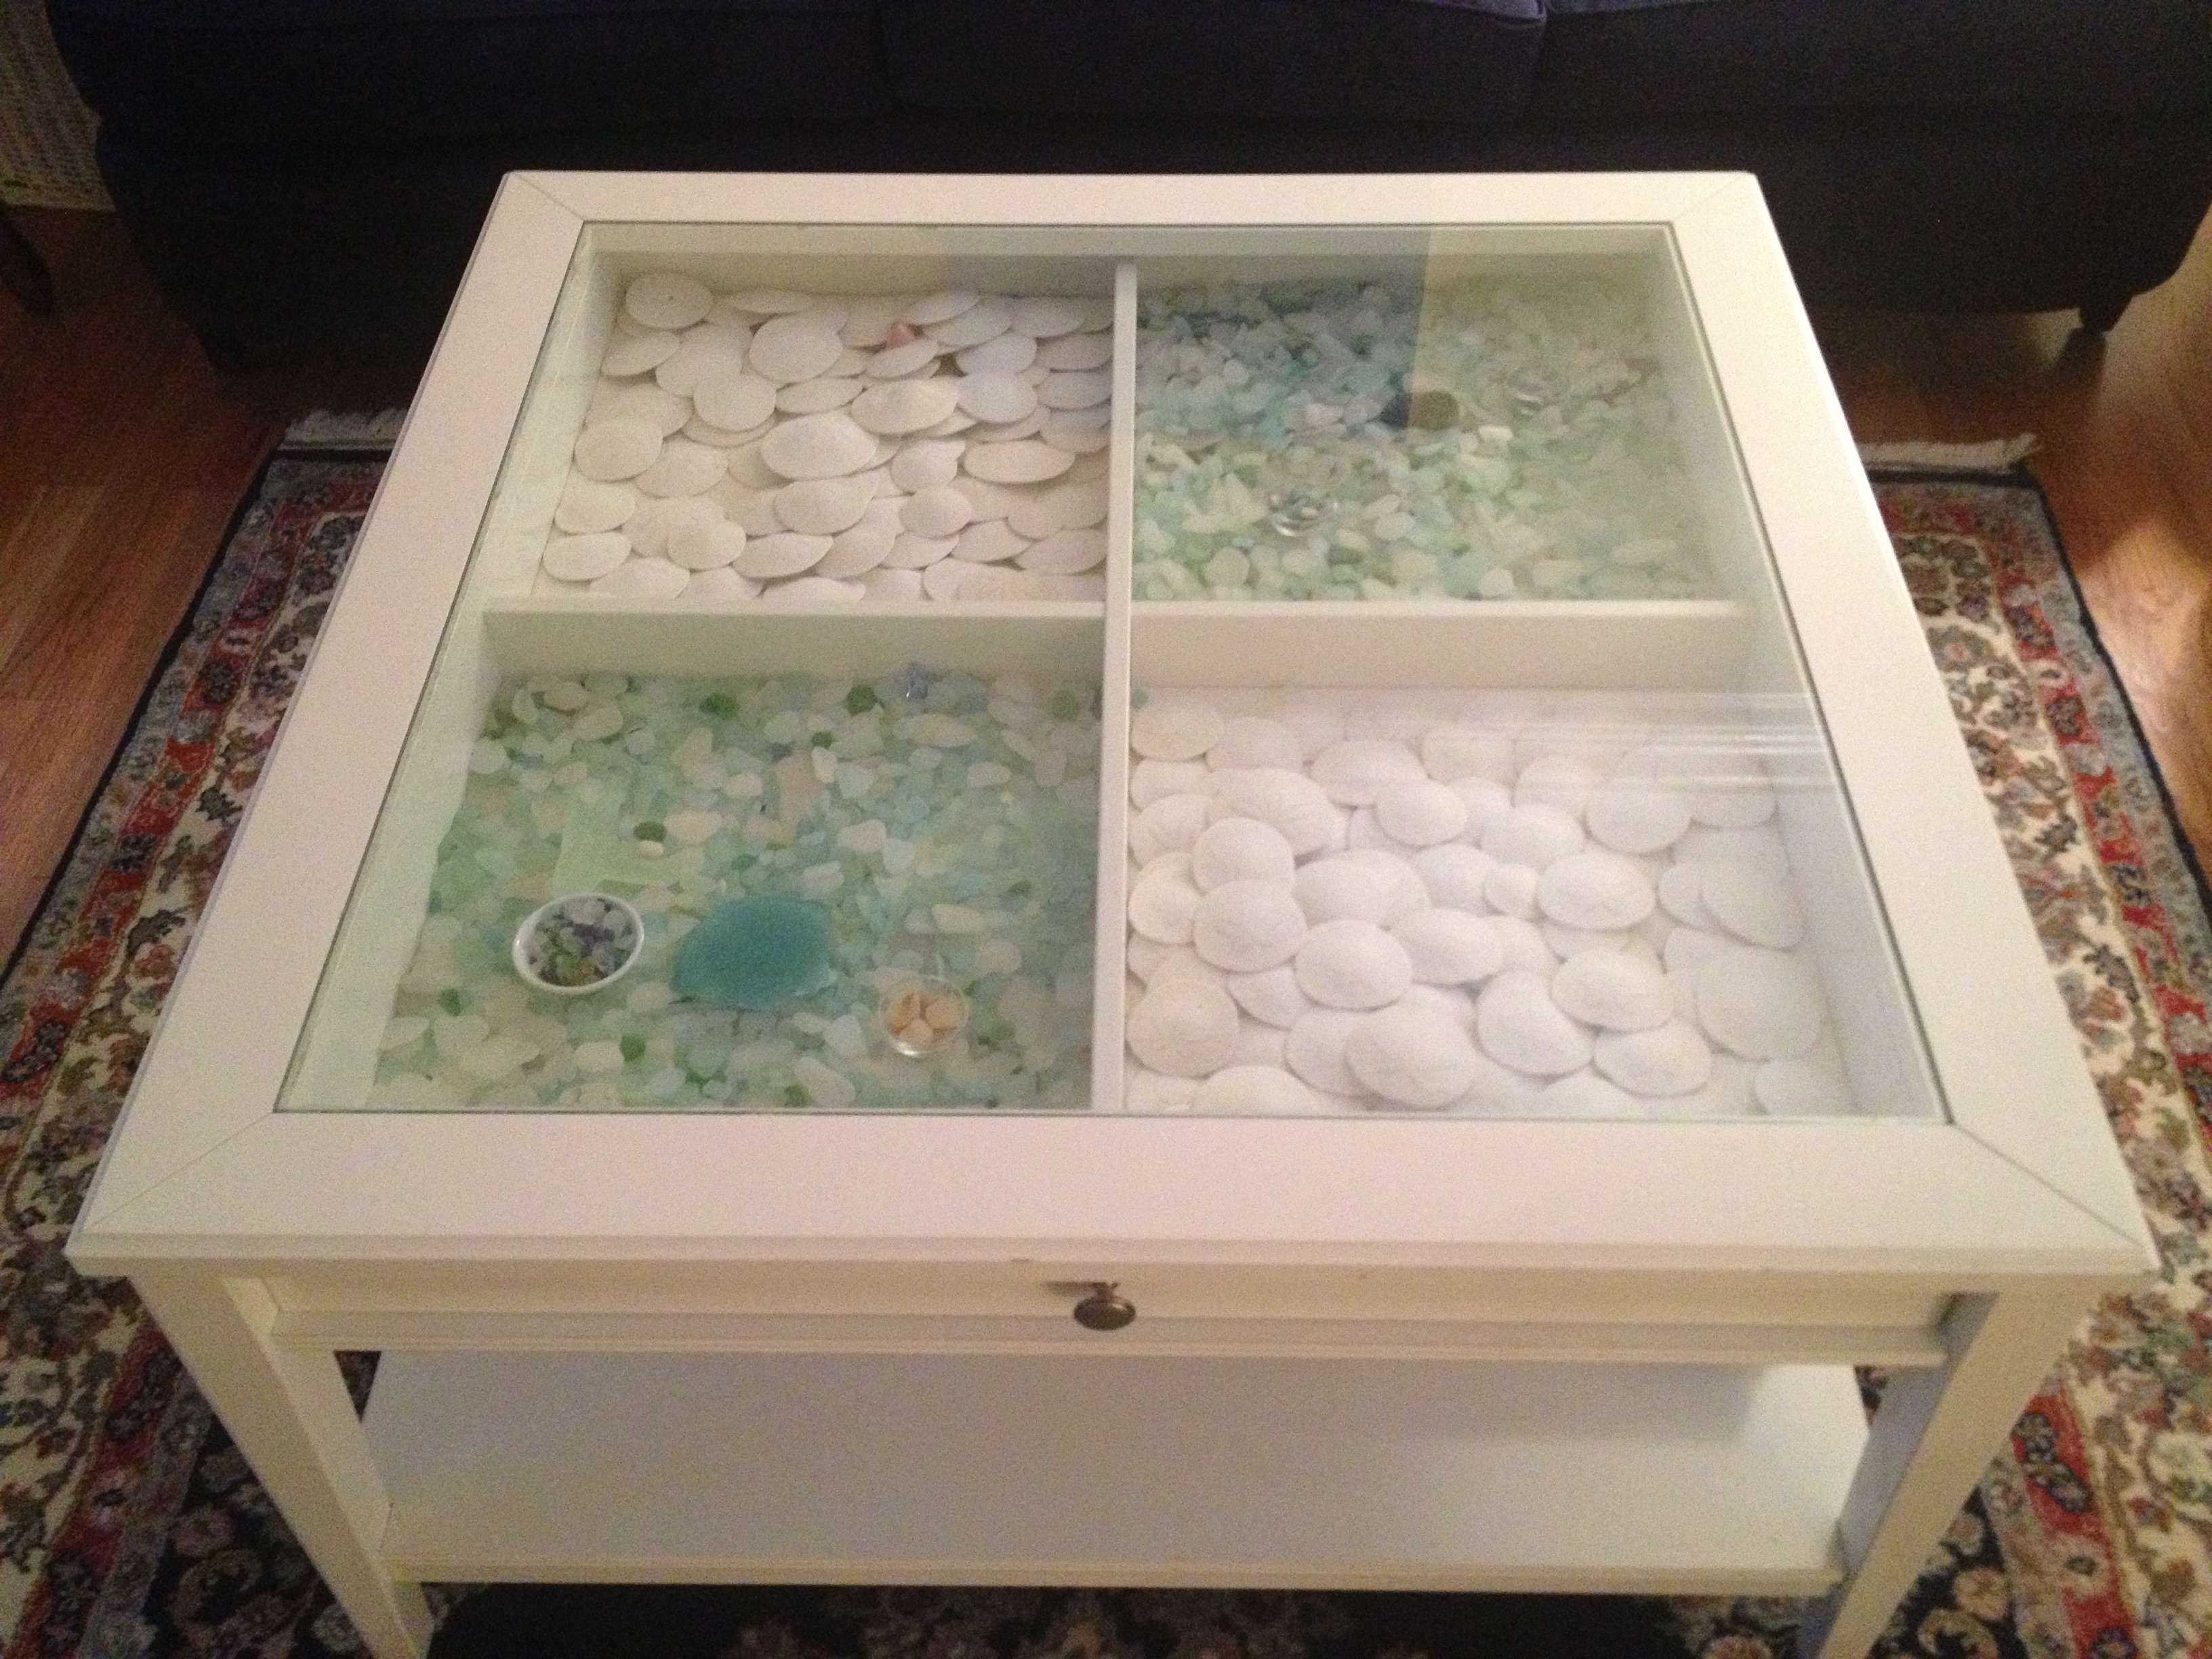 2018 Glass Top Display Coffee Tables With Drawers In Is Glass Top Display Coffee Table Any Good? Ten Ways You (View 14 of 20)